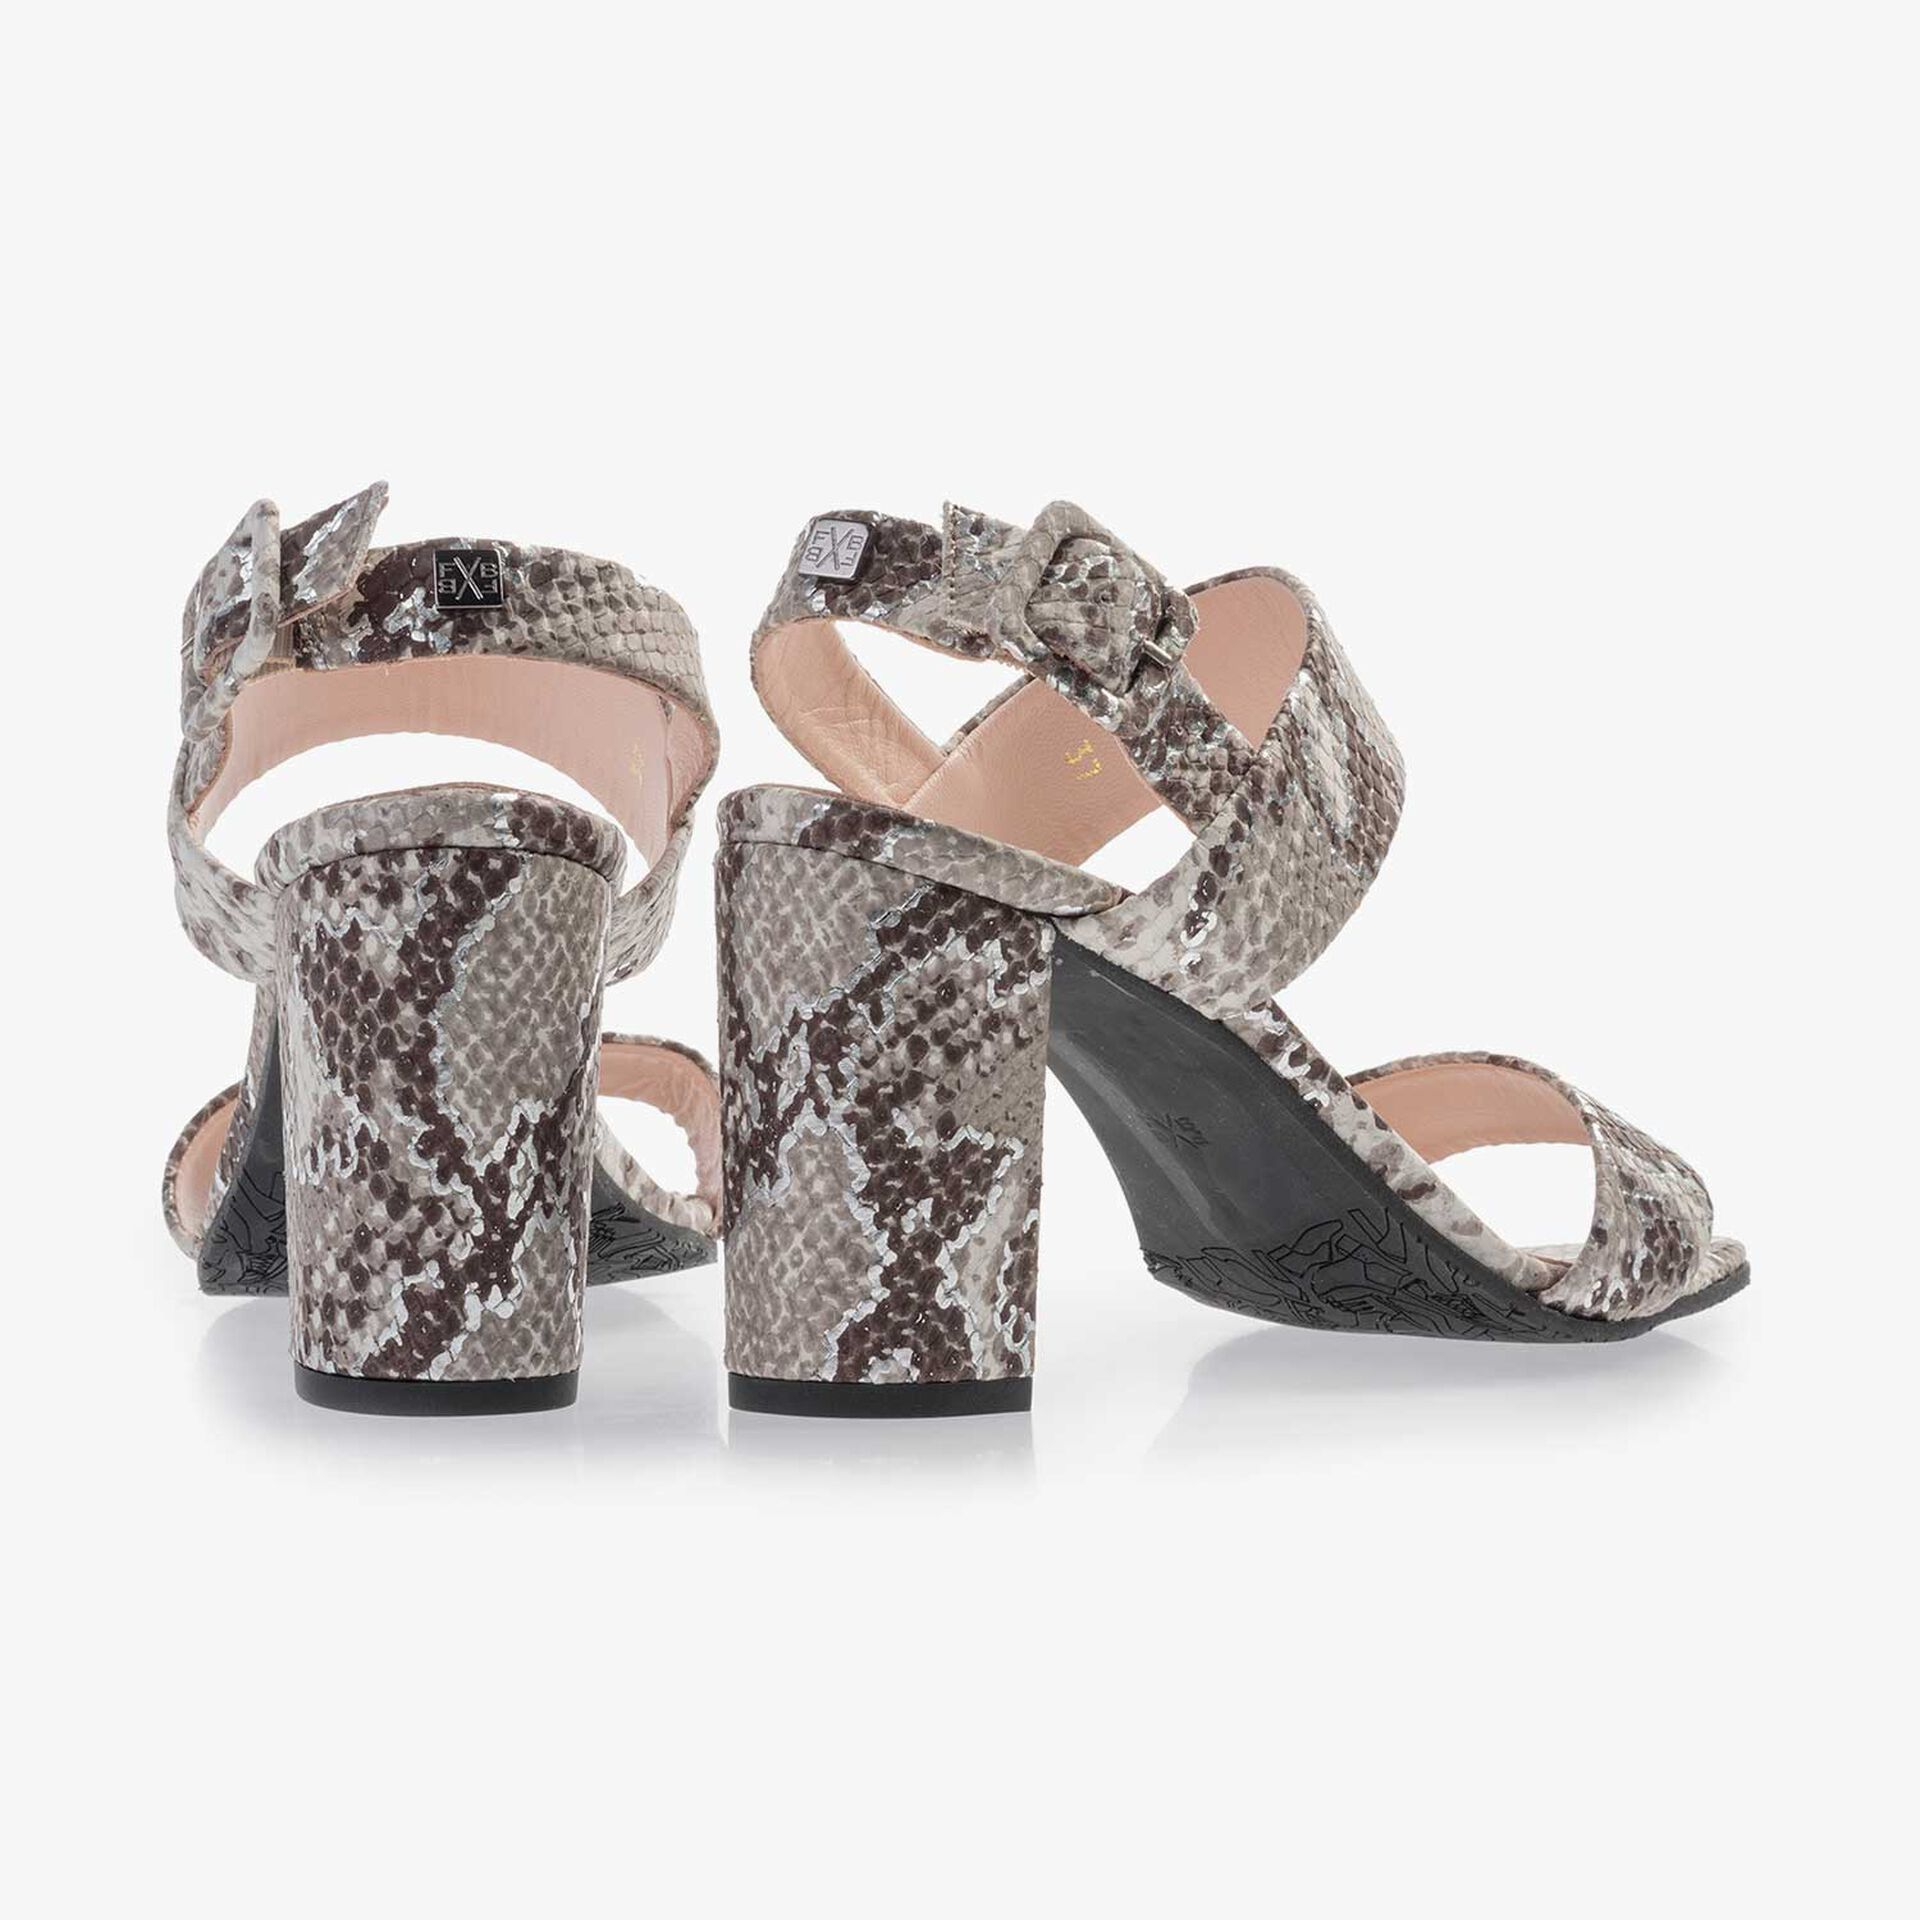 Taupe-coloured leather sandal with snake print